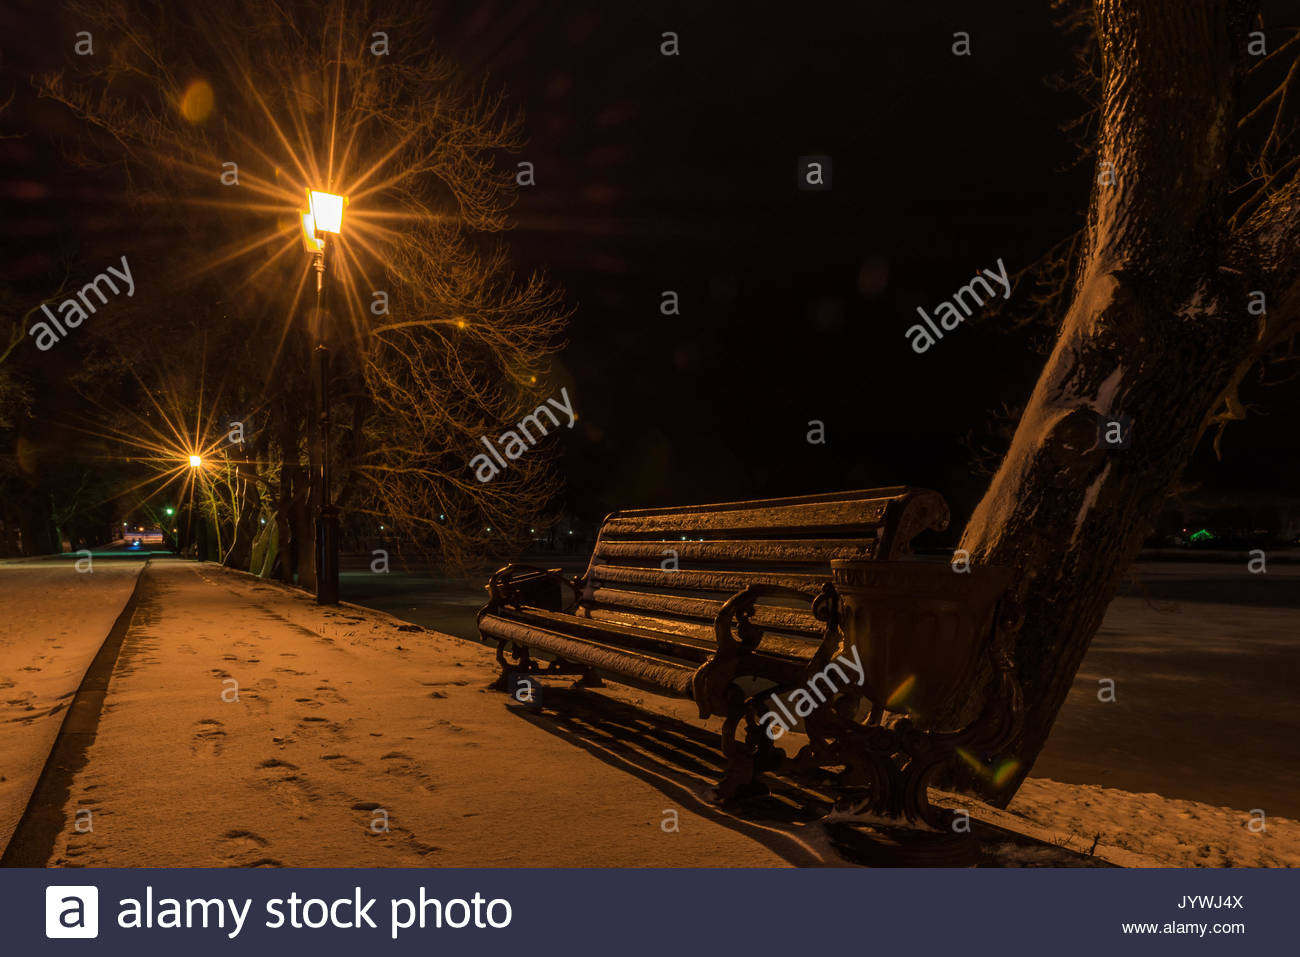 View of the bench on the illuminated winter park alley at night. Expectation. Possible date. - Stock Image